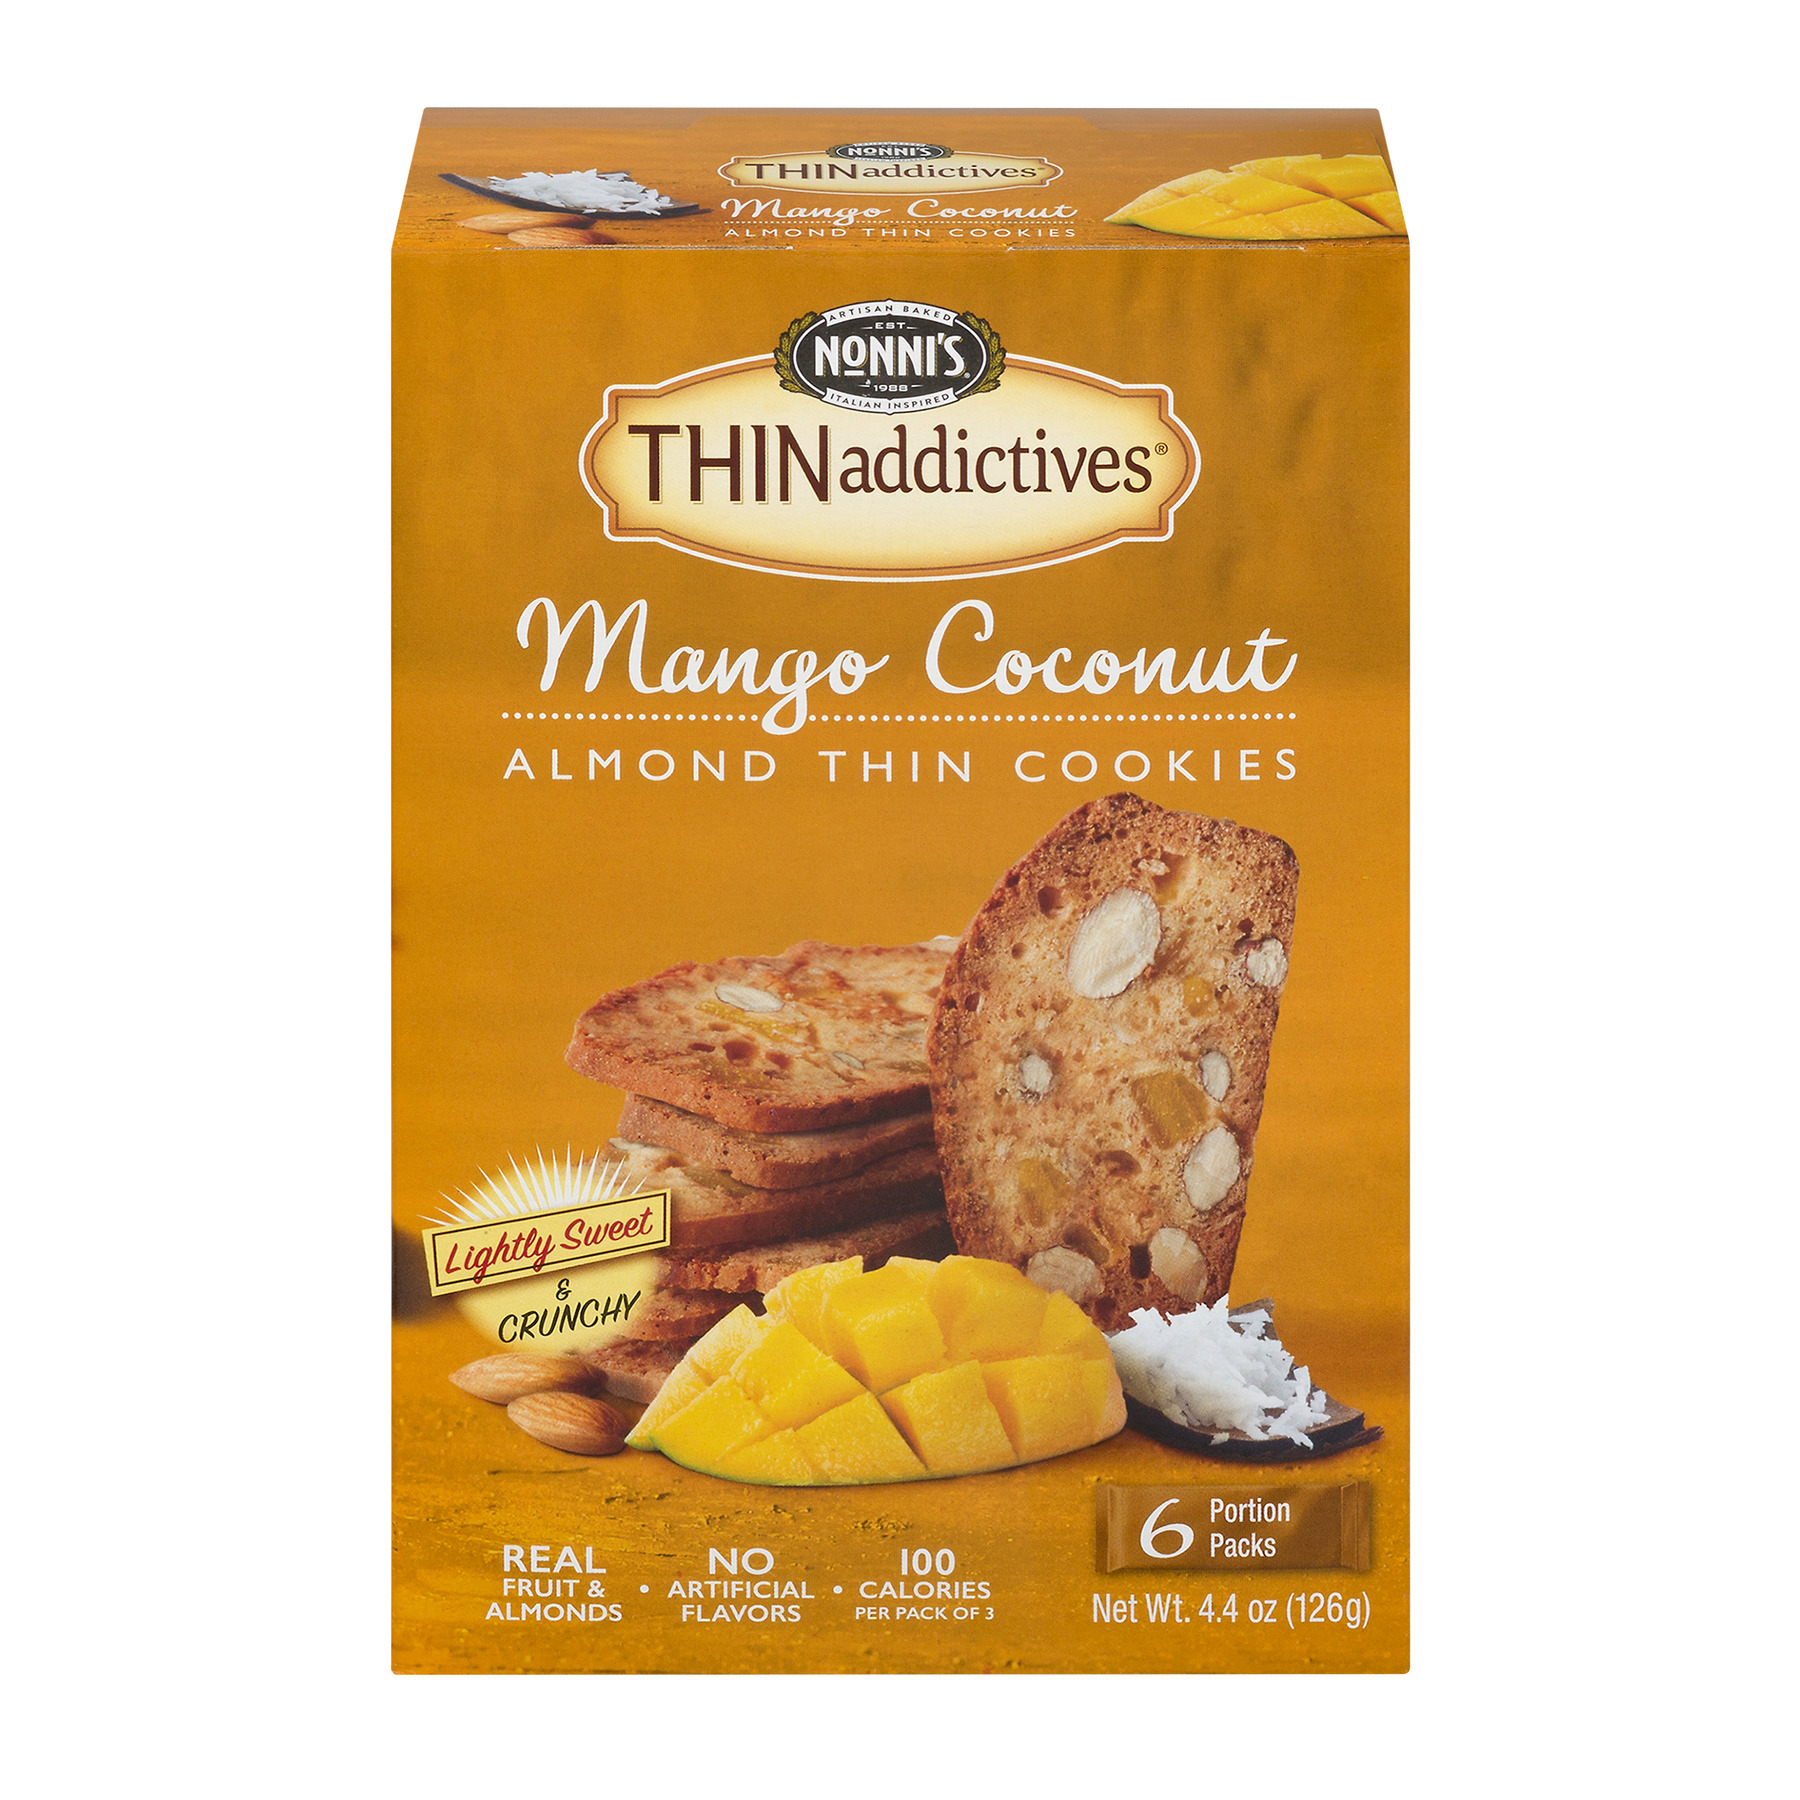 Nonni's Thinaddictives Mango Coconut Almond Thin Cookies, 4.4 Oz., 6 Count